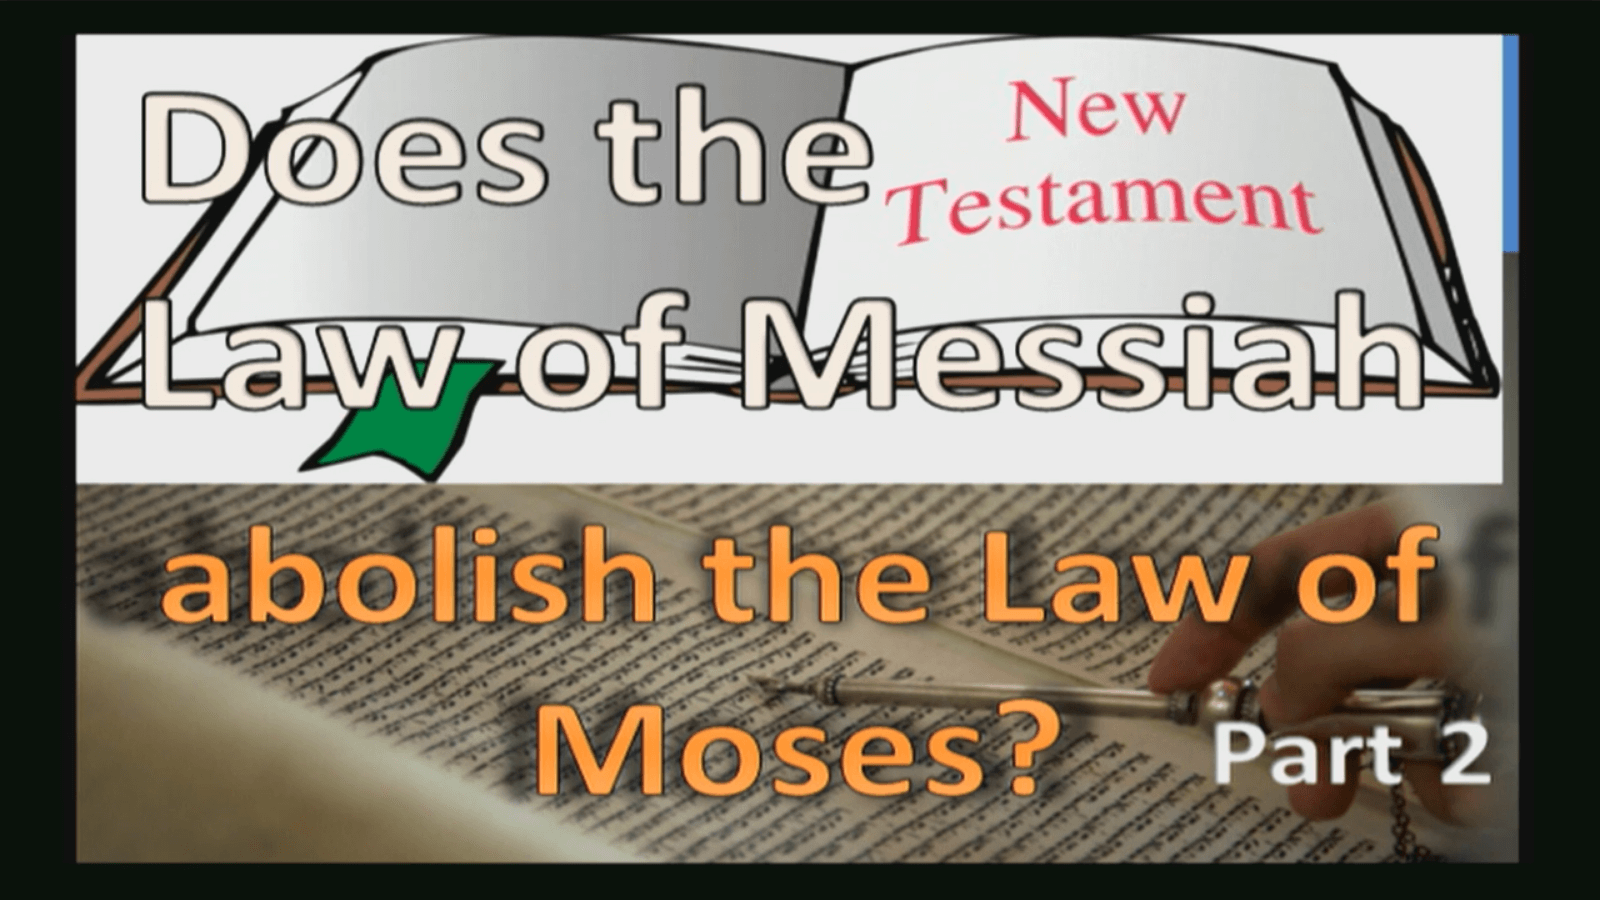 Does the Law of Messiah abolish the Law of Moses? – Part 2